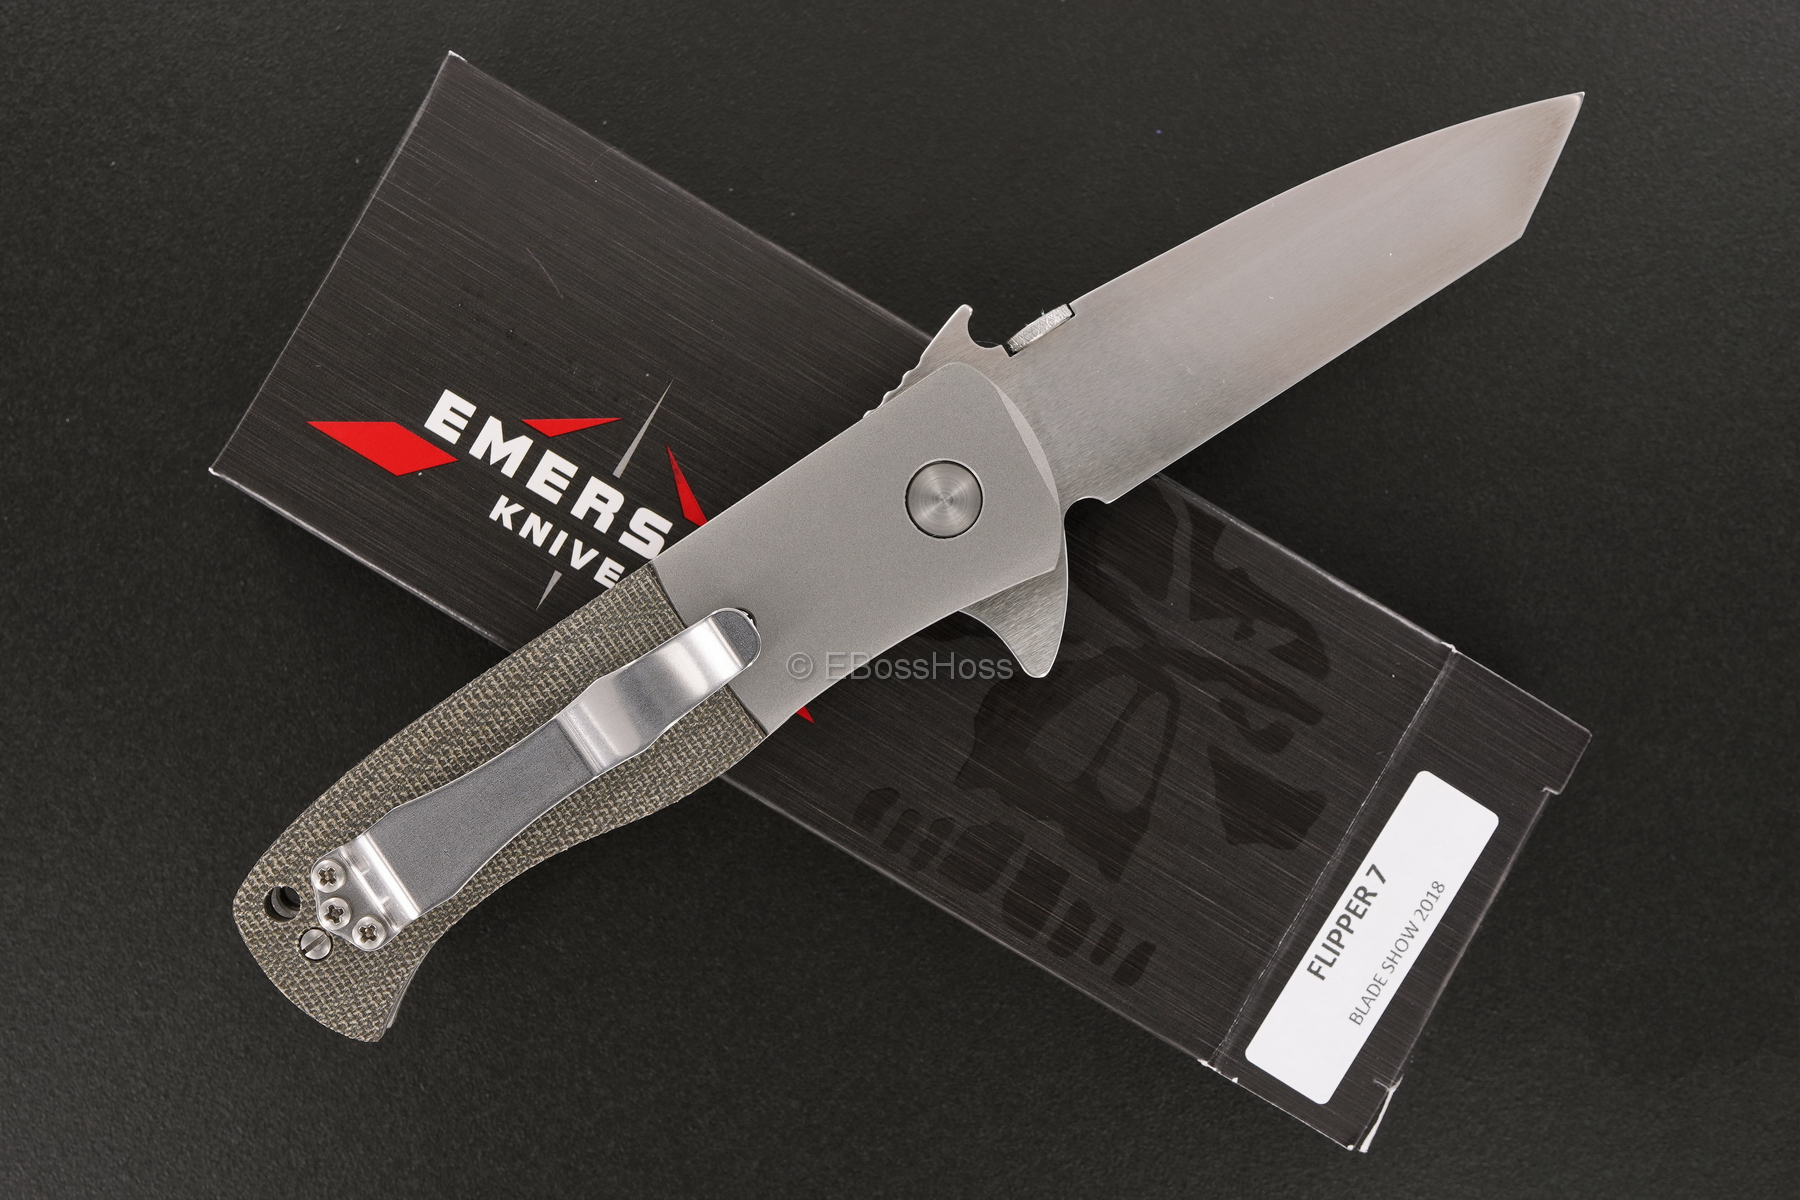 Ernie Emerson Custom Flipper 7